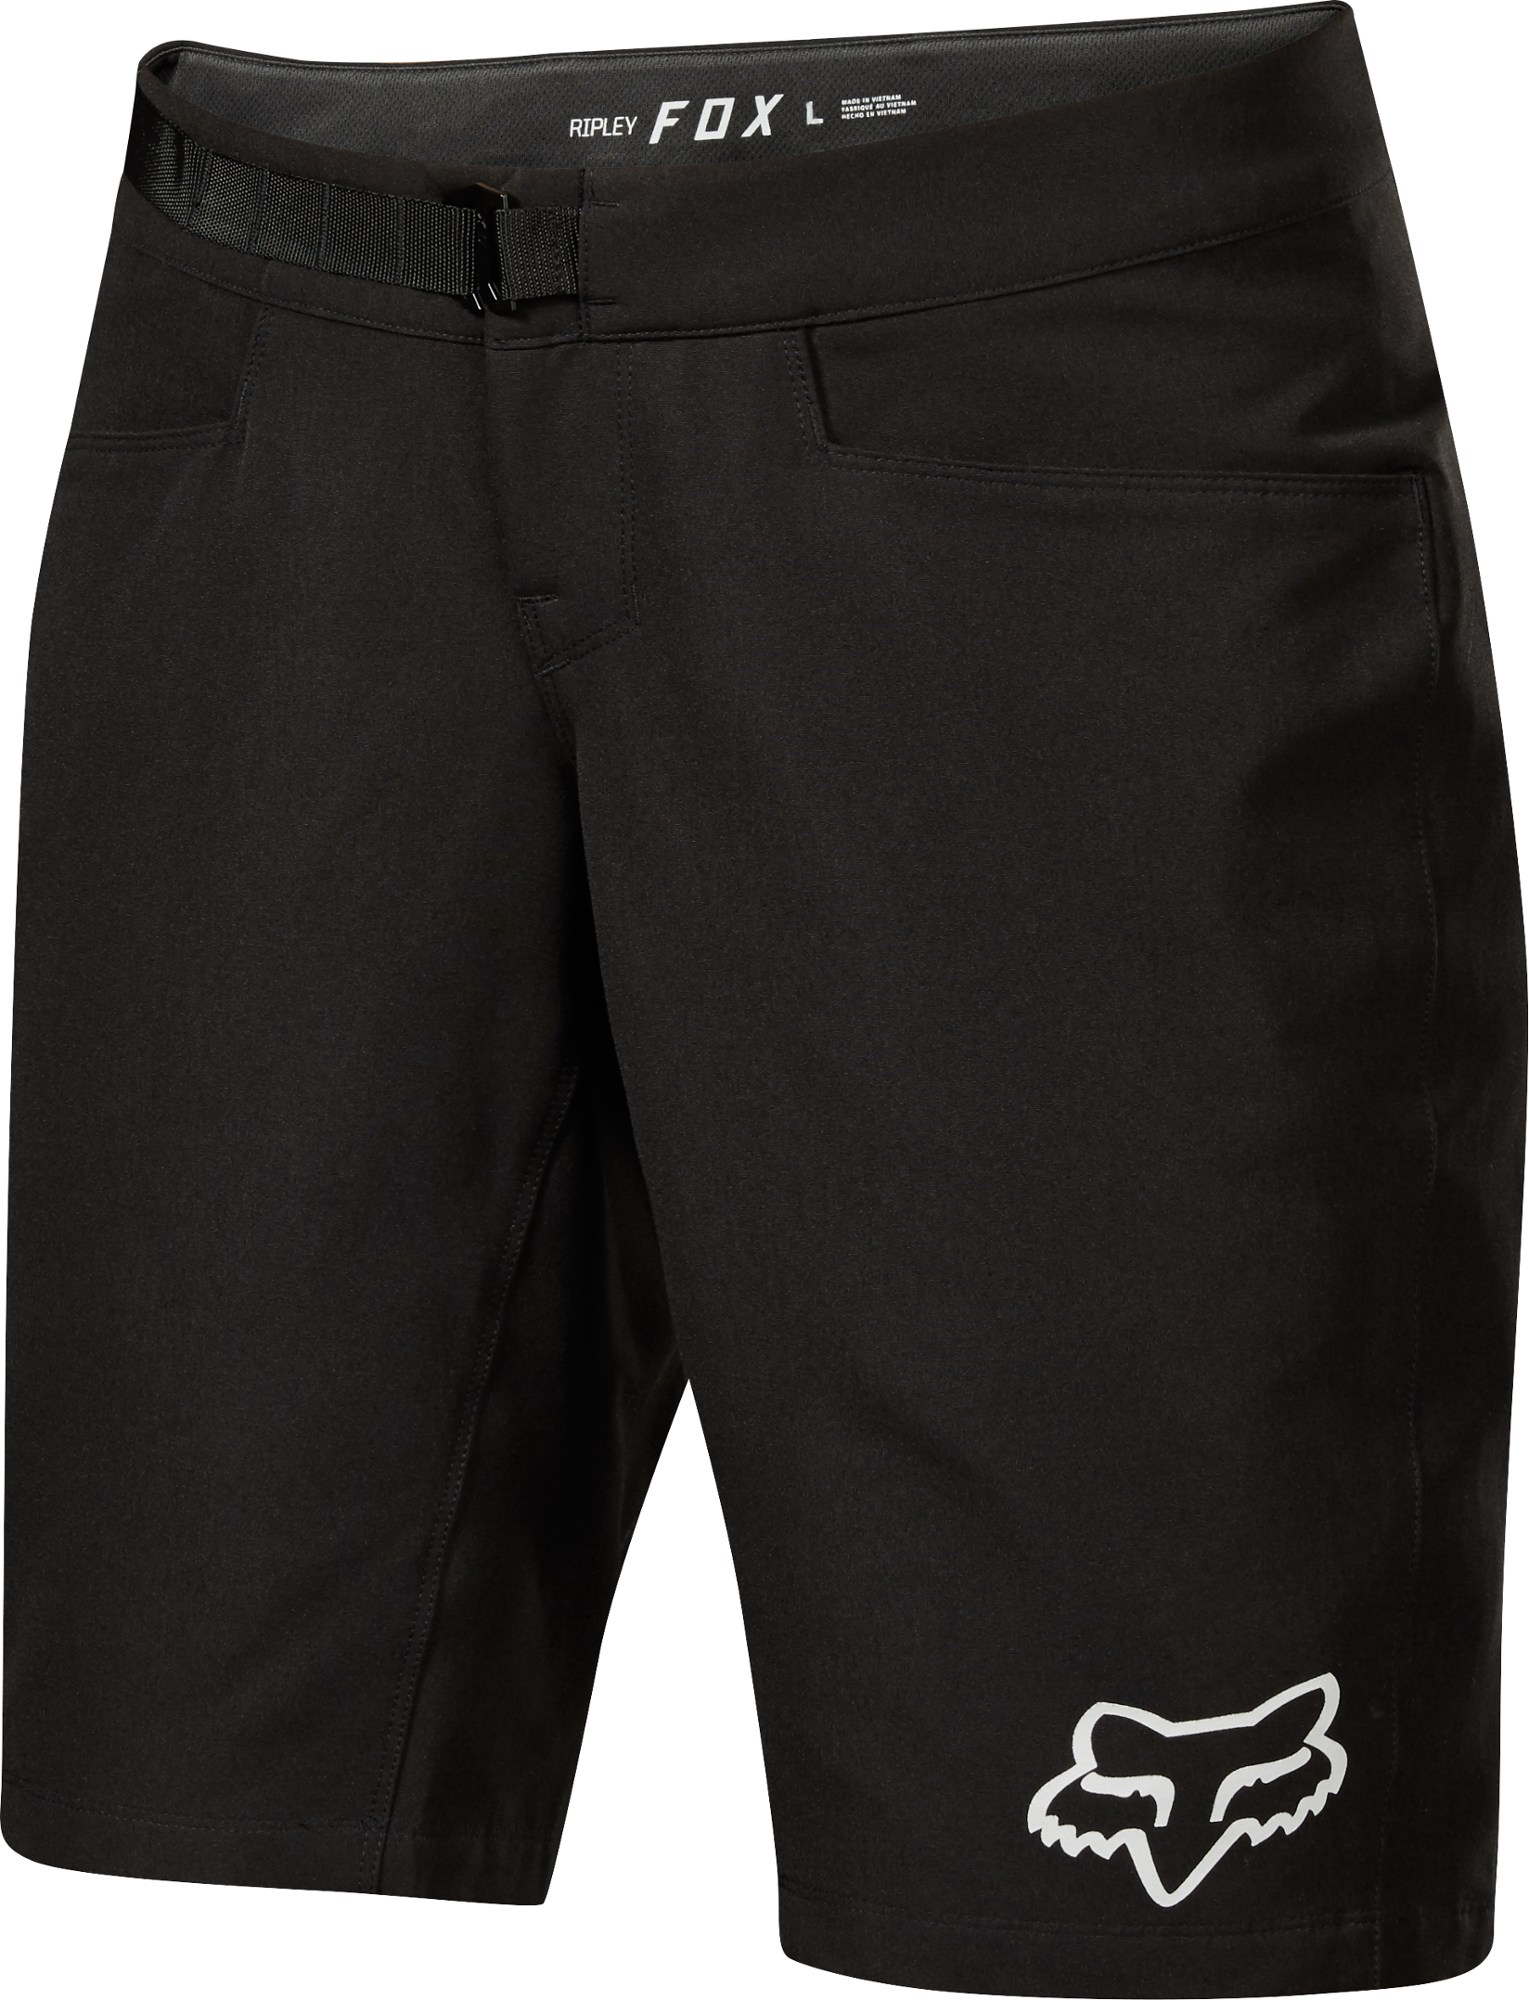 Fox Ripley Bike Shorts - Women's